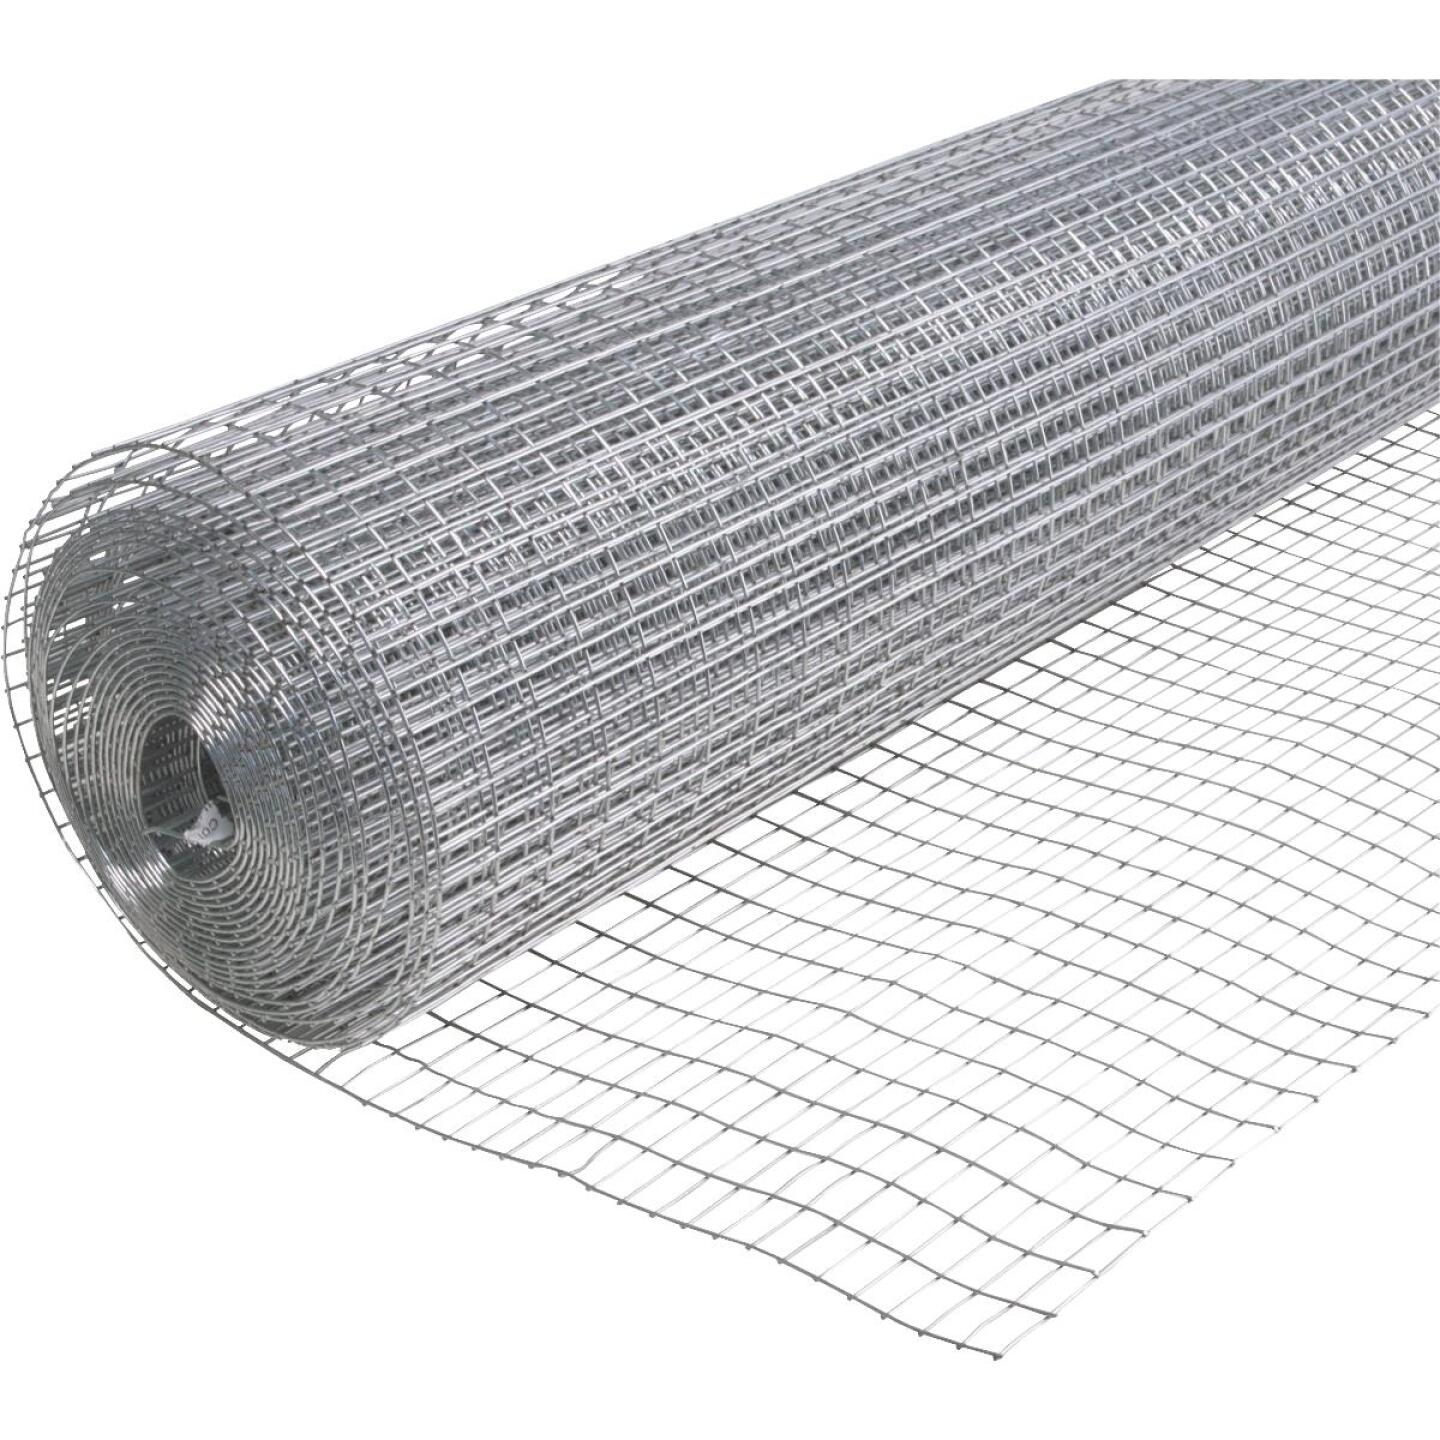 Do it Utility 48 In. H. x 25 Ft. L. (1x1/2) Galvanized Welded Wire Fence Image 1